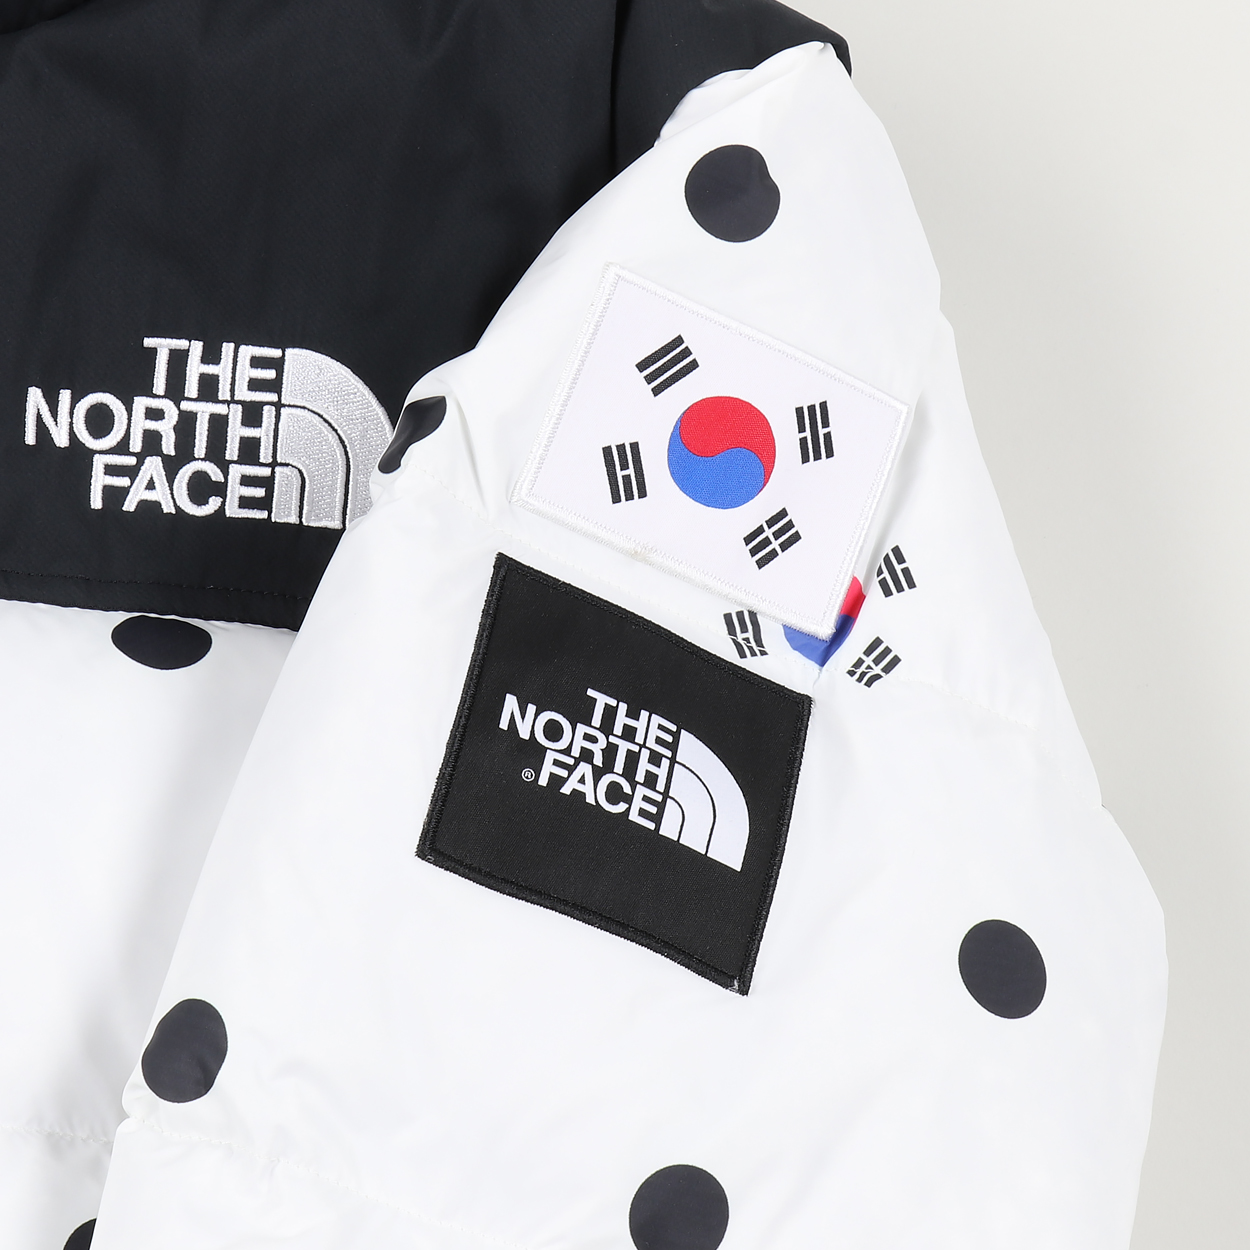 Pyeongchang 2018 Northface | The north